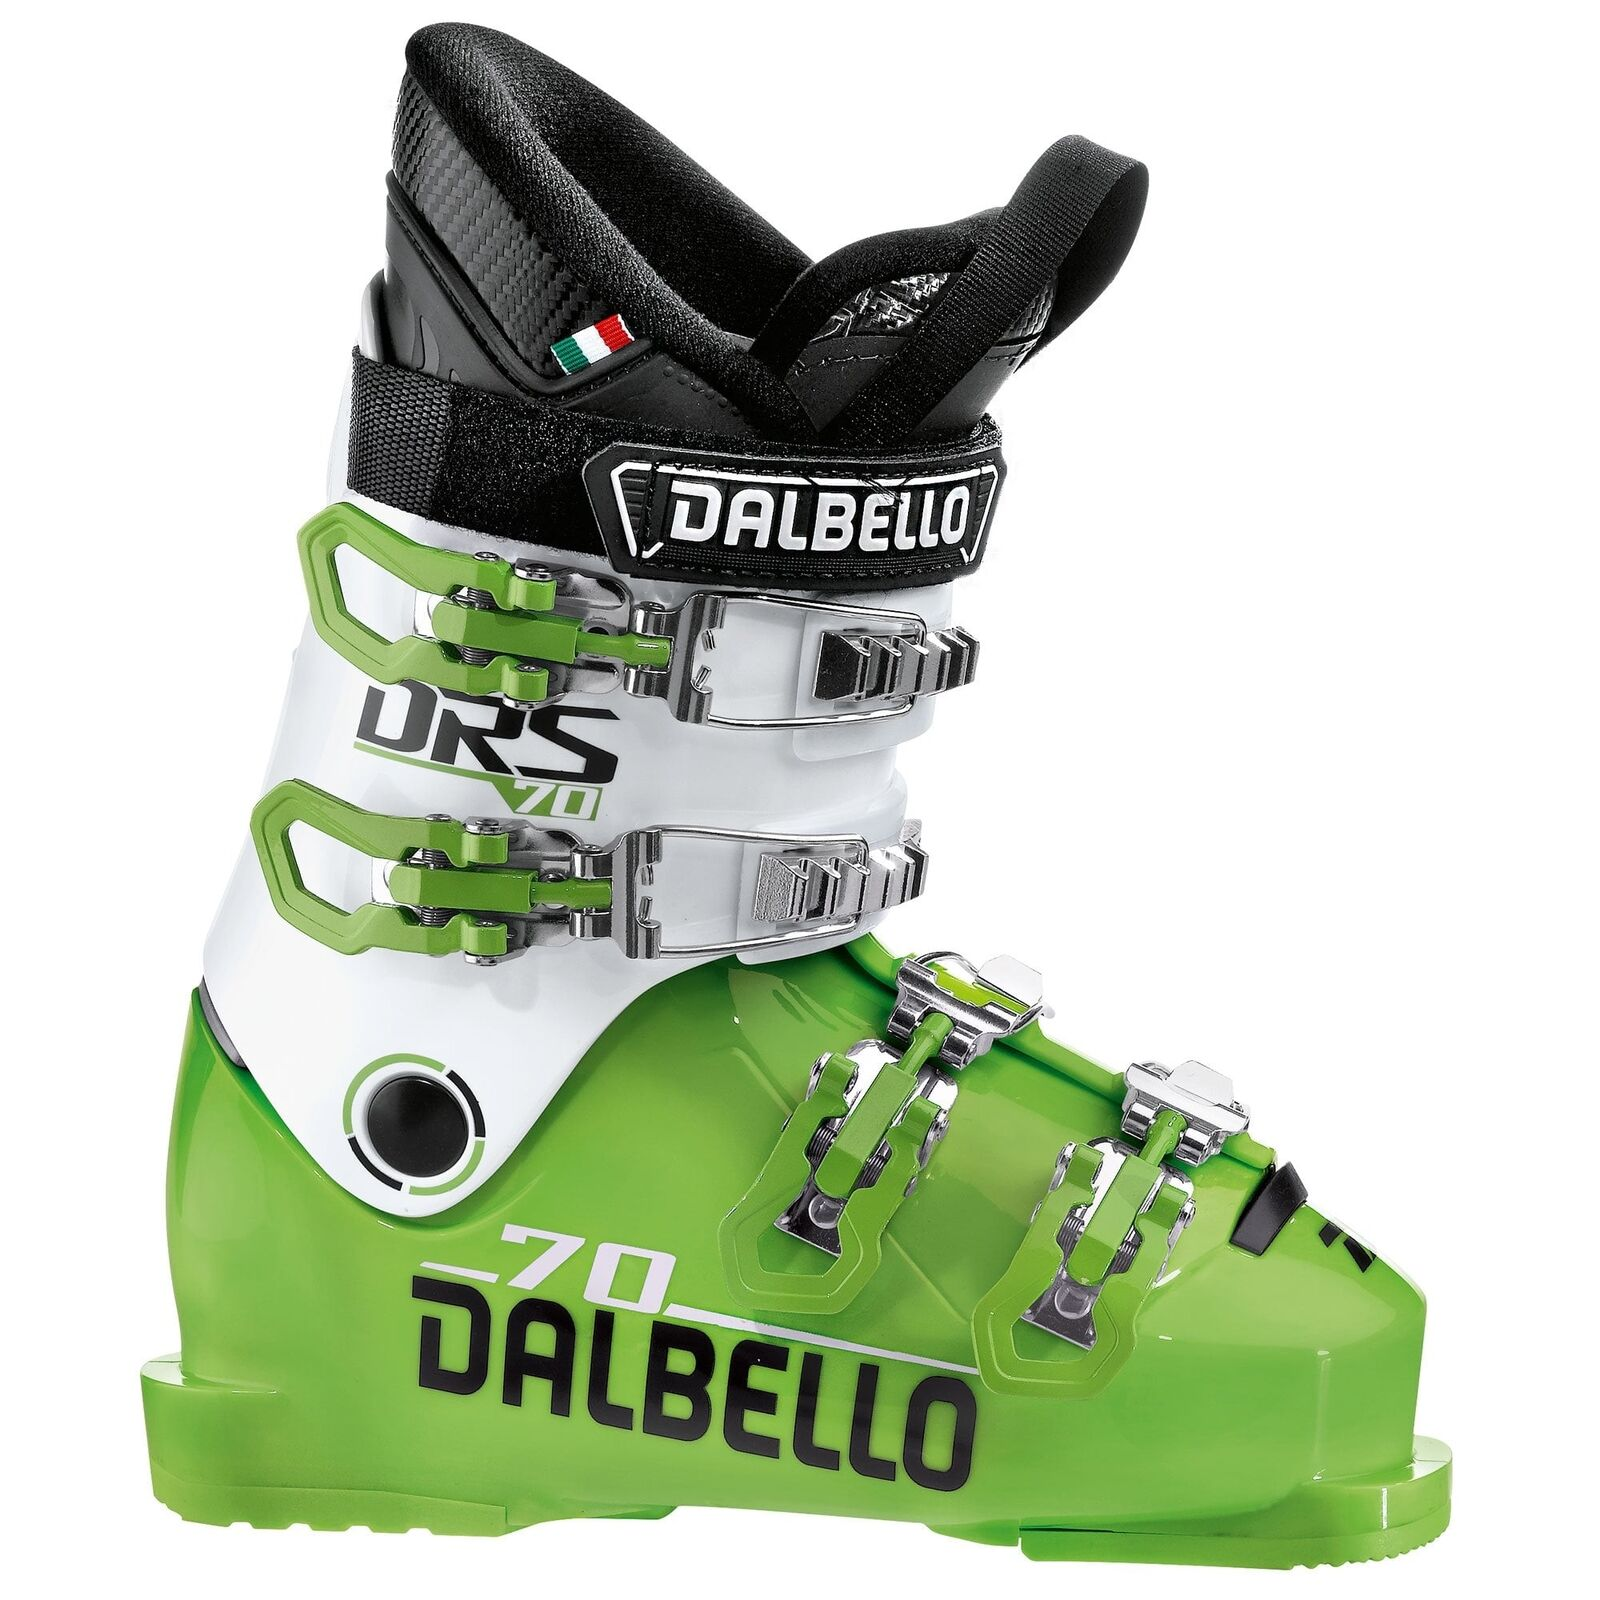 Dalbello DRS 70 Junior Race Ski Stiefel